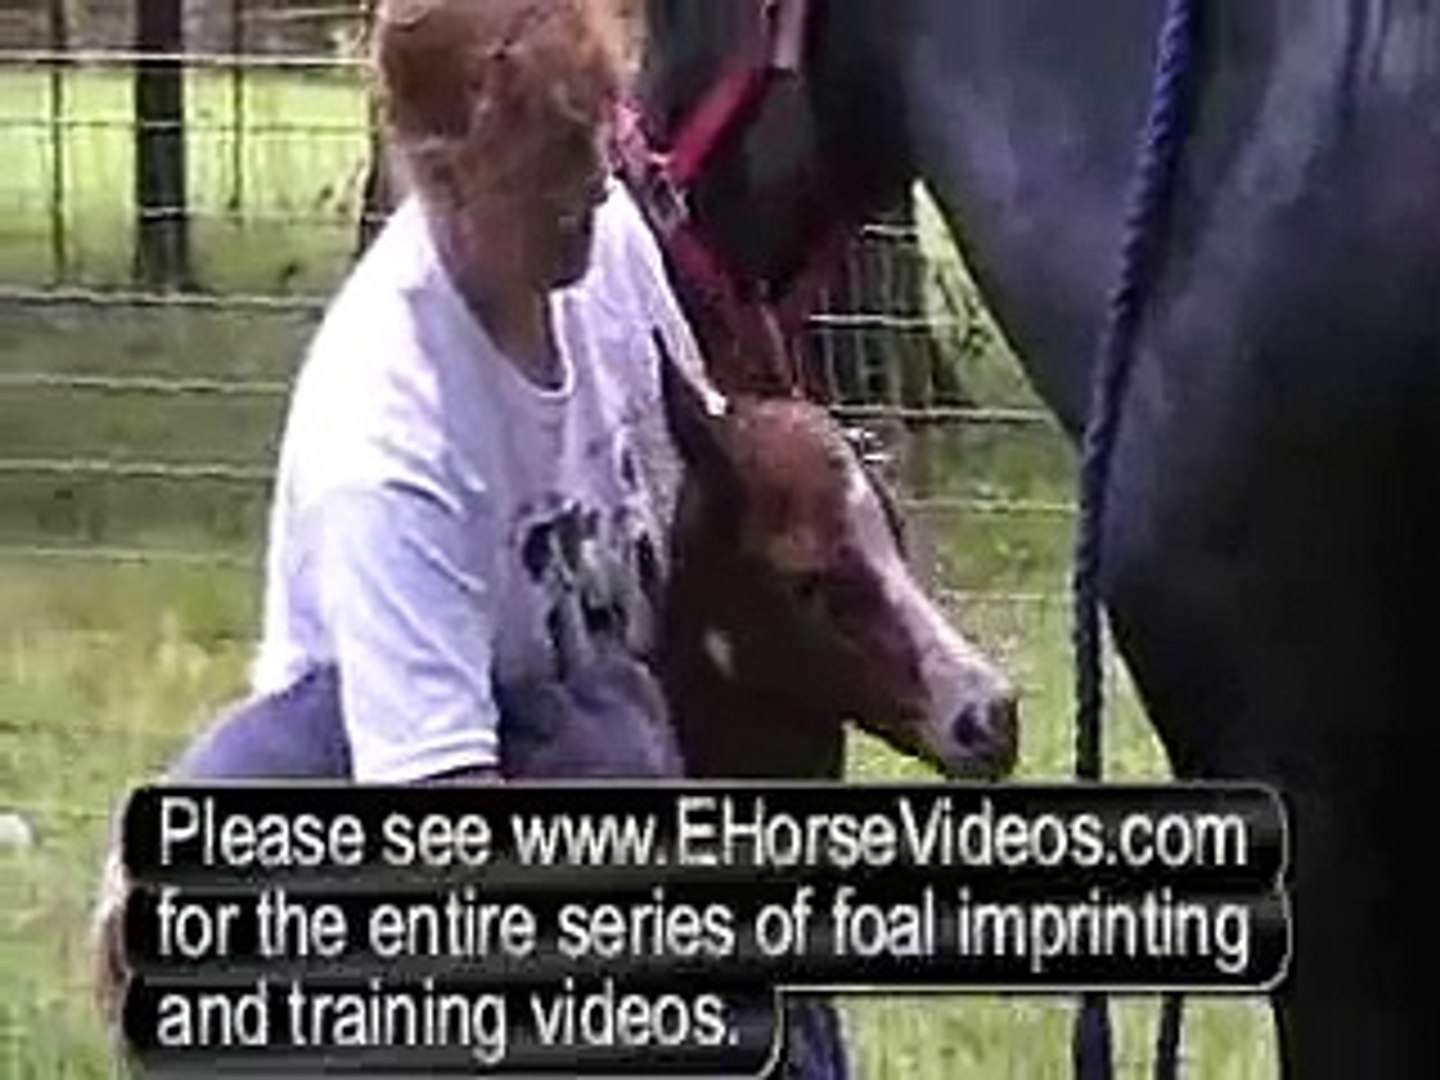 Horse Training Videos Preview Of Imprinting Your Foal Ehorsevideos Com Video Dailymotion